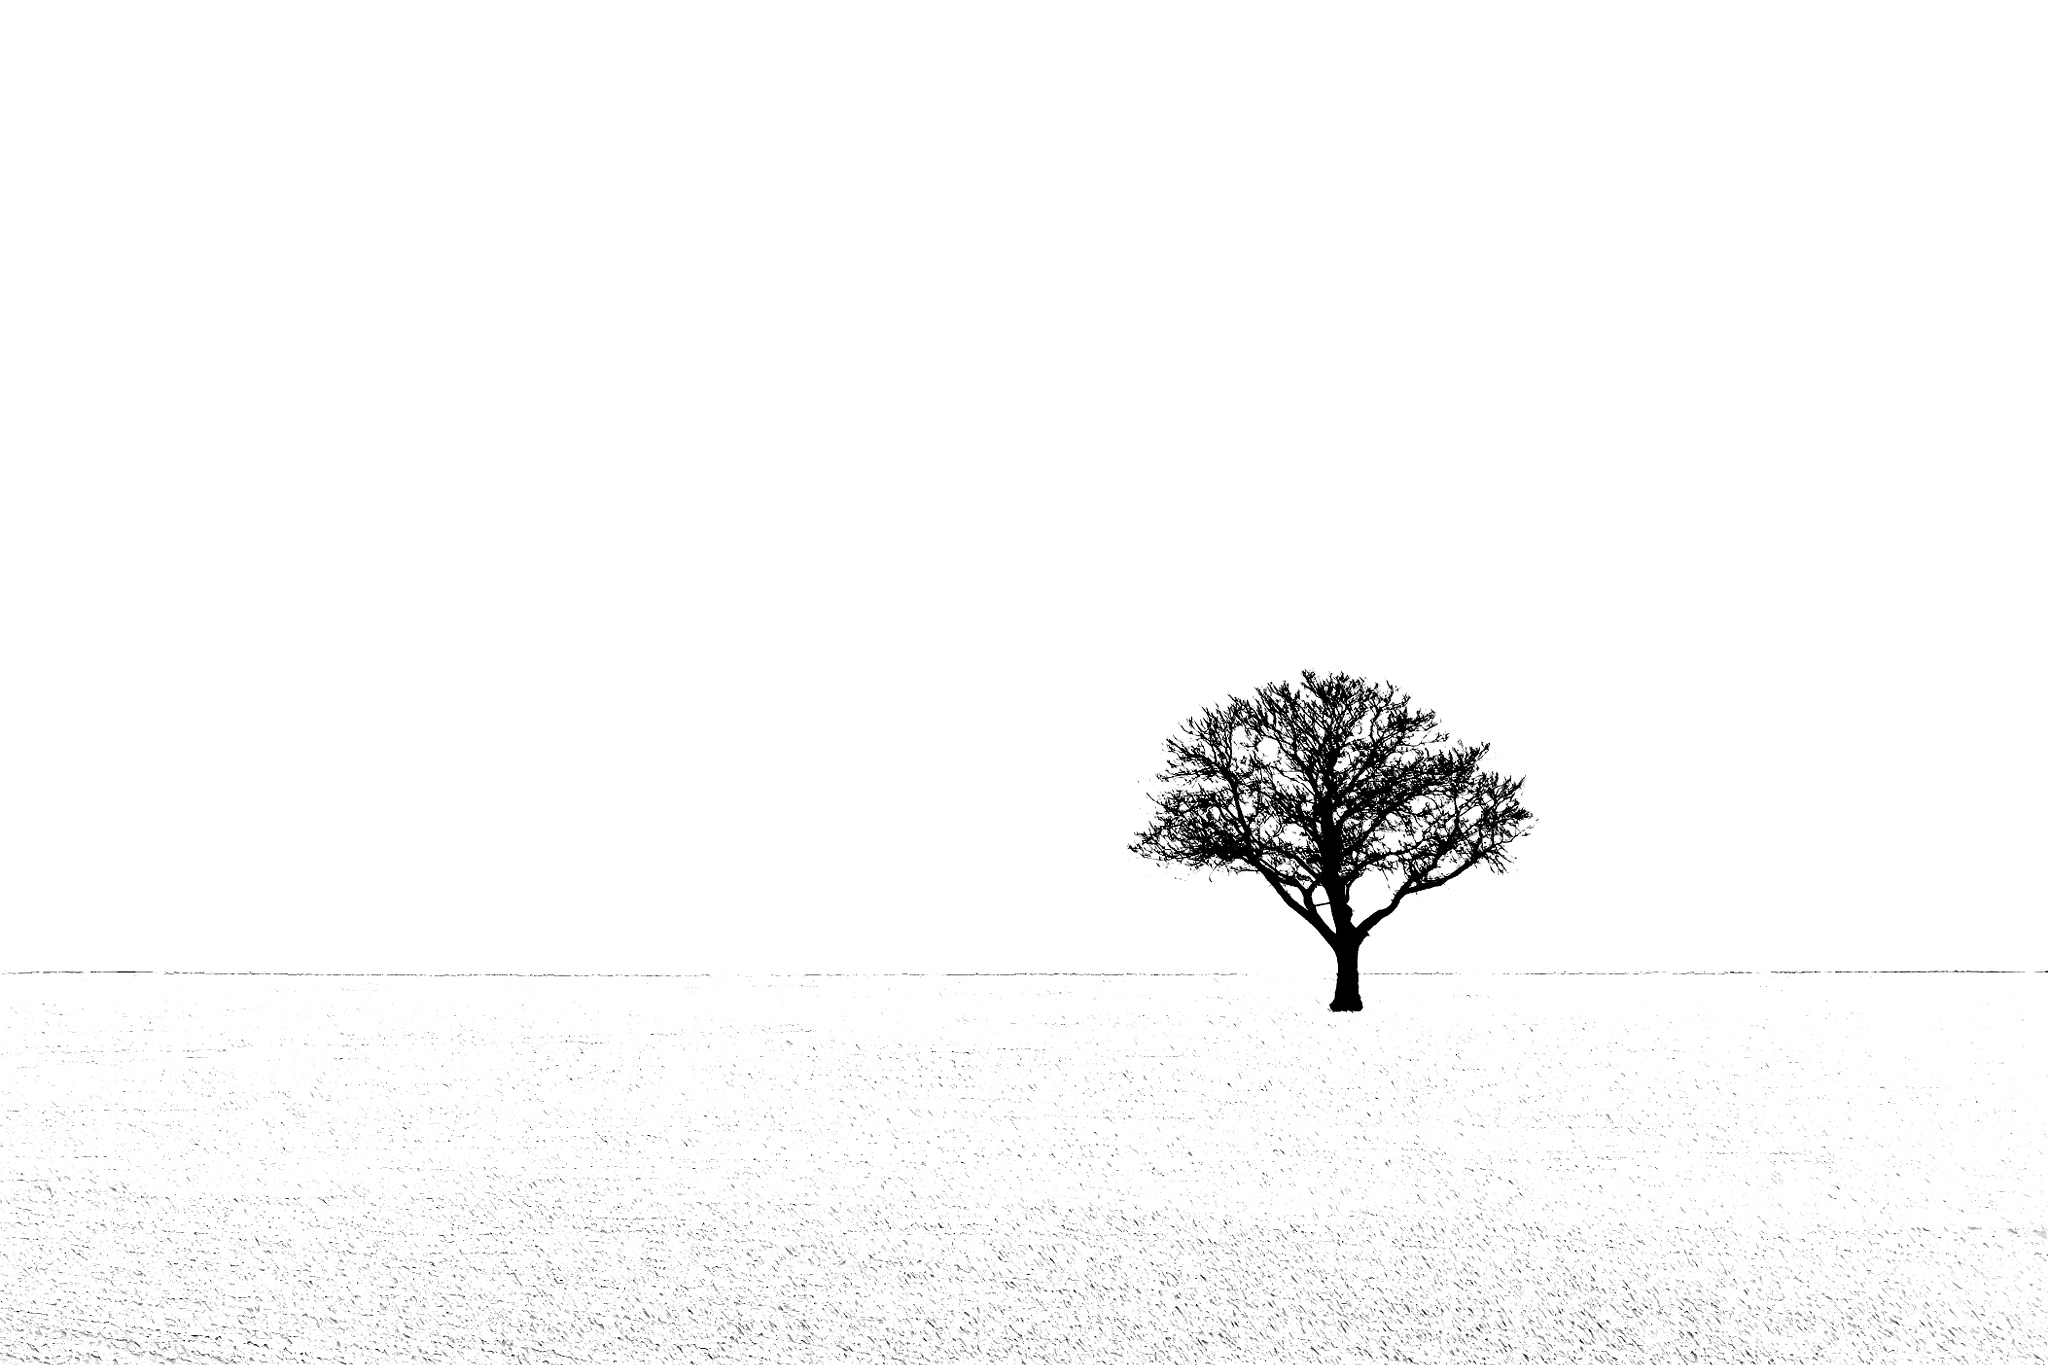 Solitair by AdolfBeck